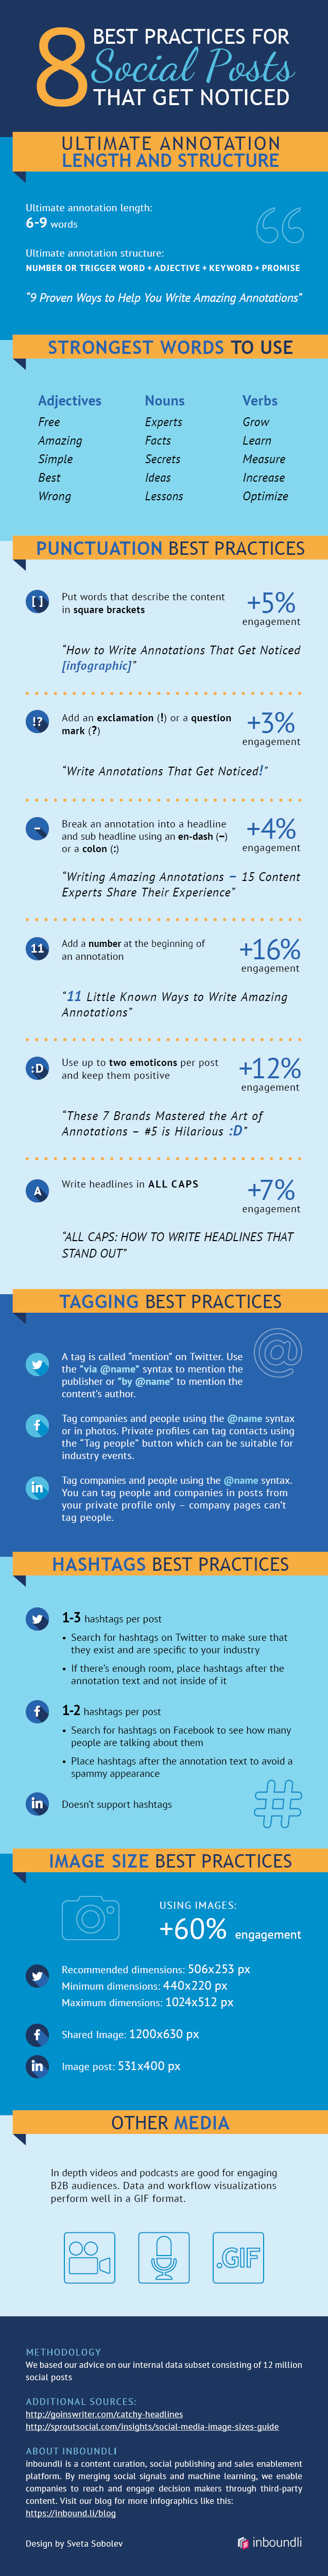 An infographic describing how to optimize social media posts for maximum reach and engagement